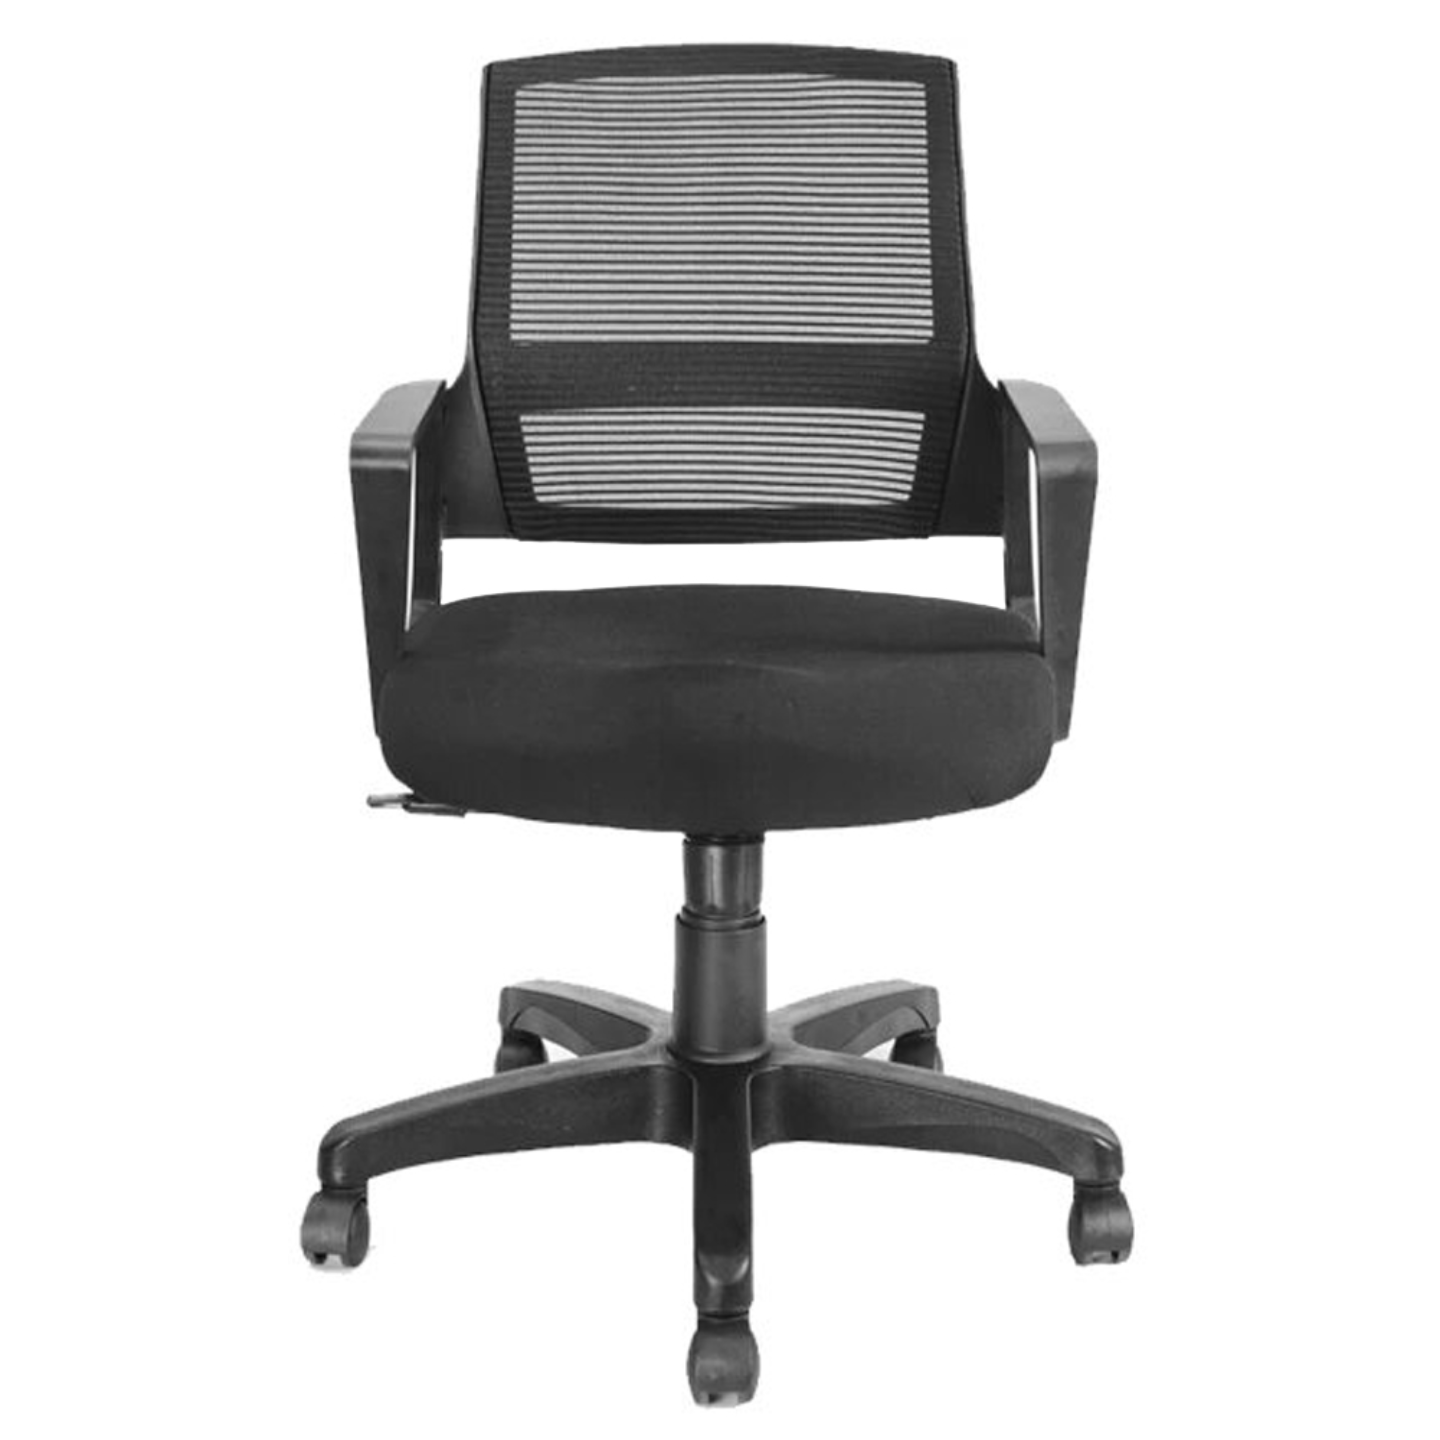 Home Office Chair HOLI Low Back